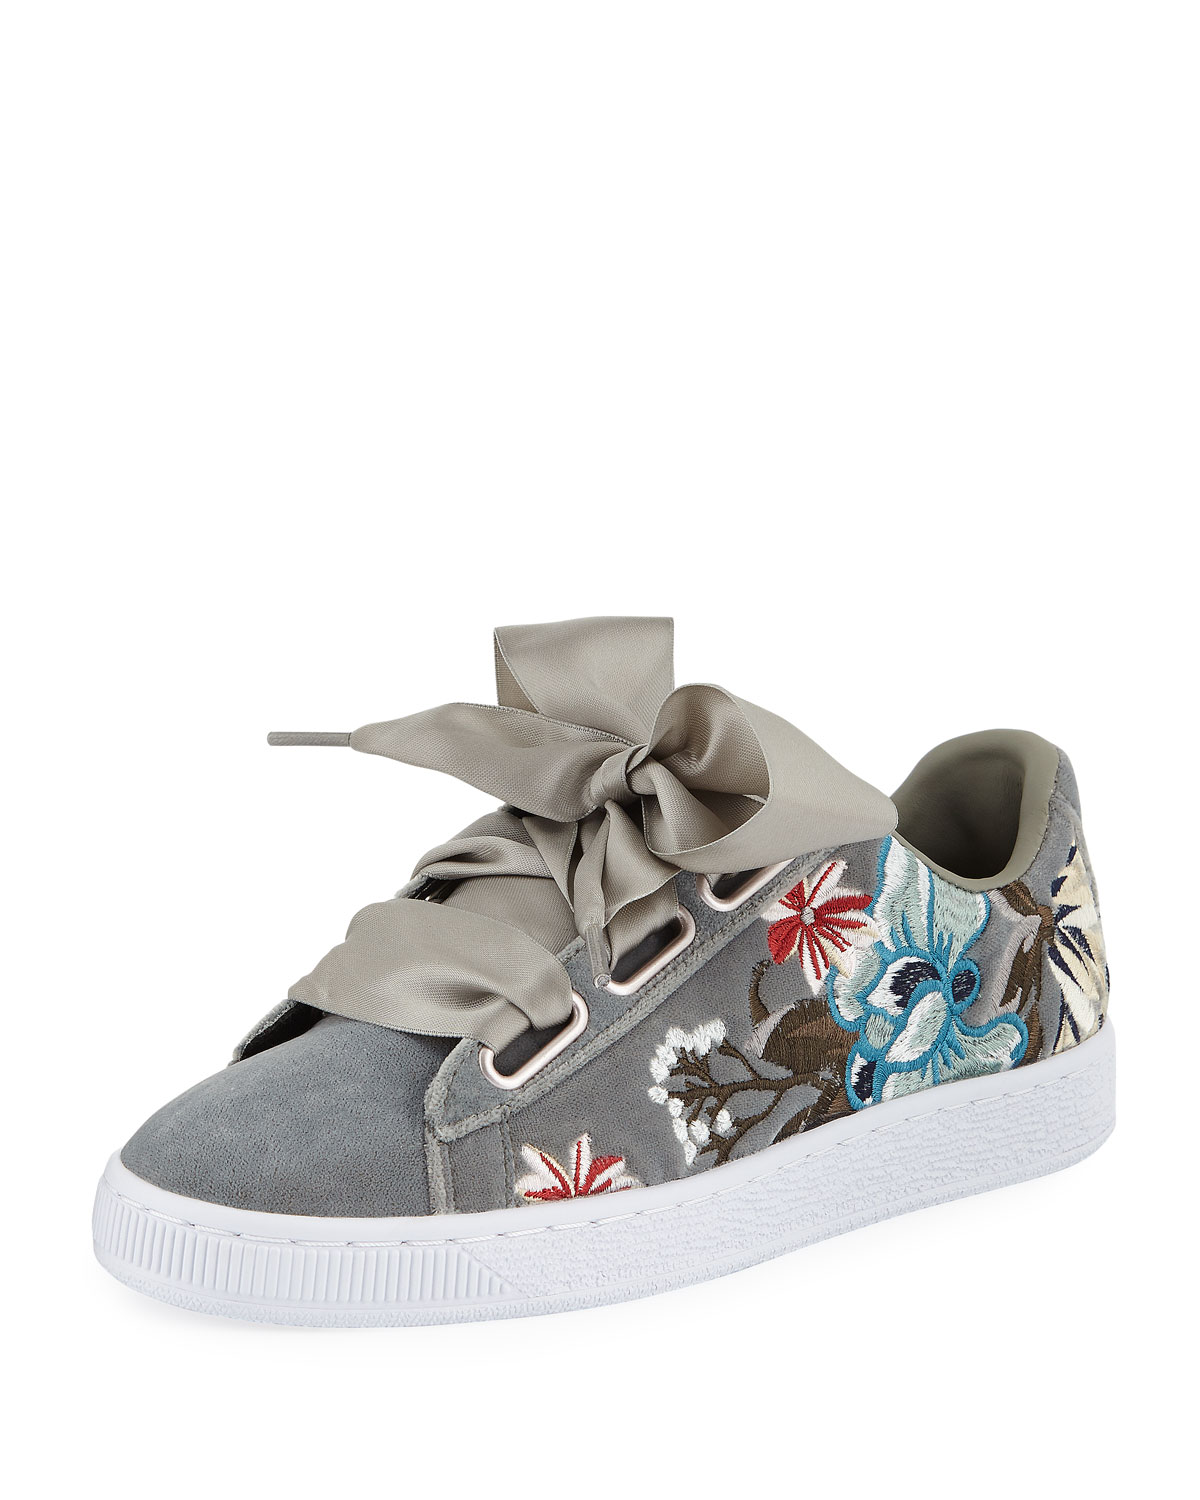 size 40 4e2d2 c3637 Basket Heart Hyper Embroidered Sneakers, Gray